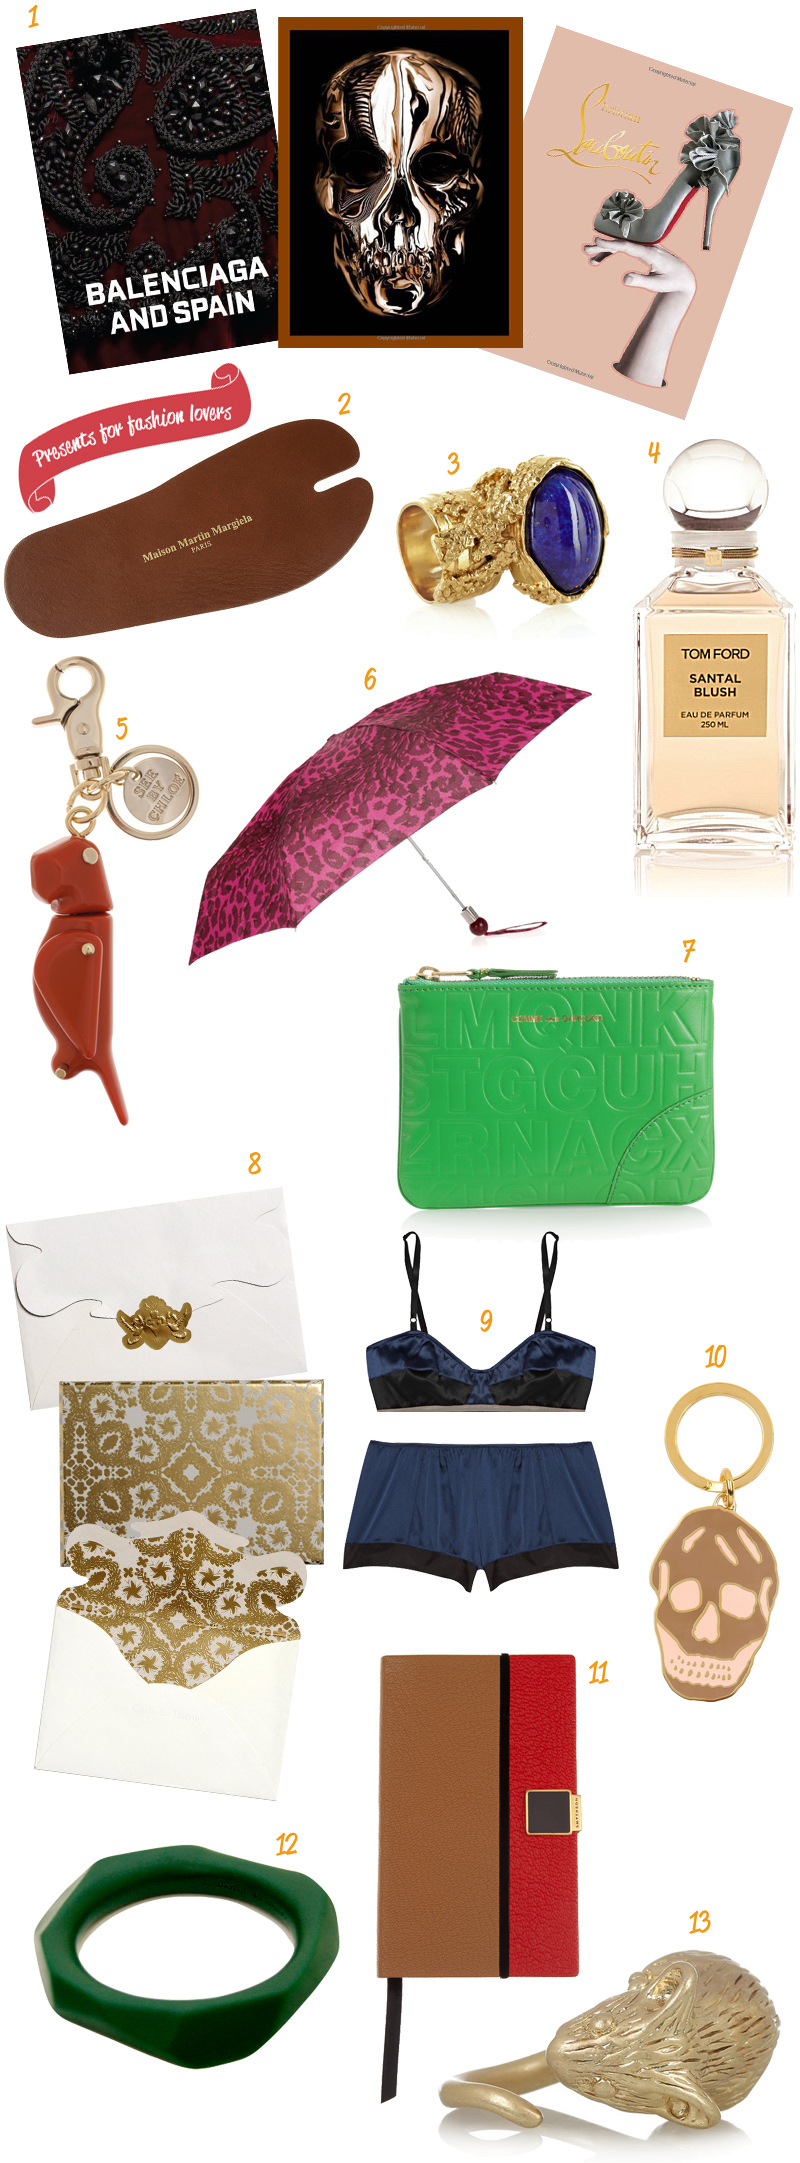 Gifts for fashion lovers 86